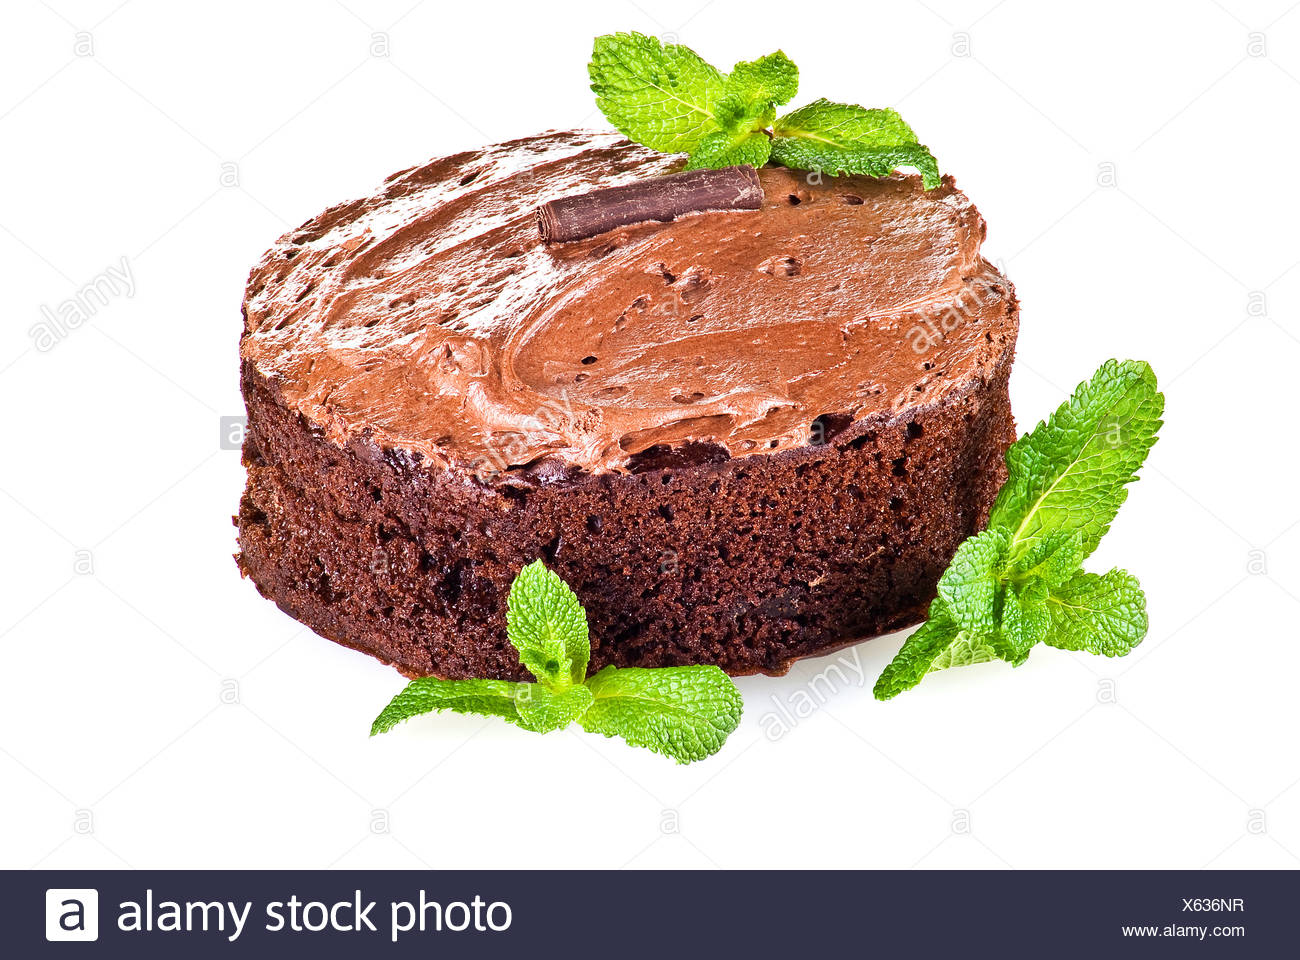 Dark brown chocolate cake and mint leaves over white background Stock Photo